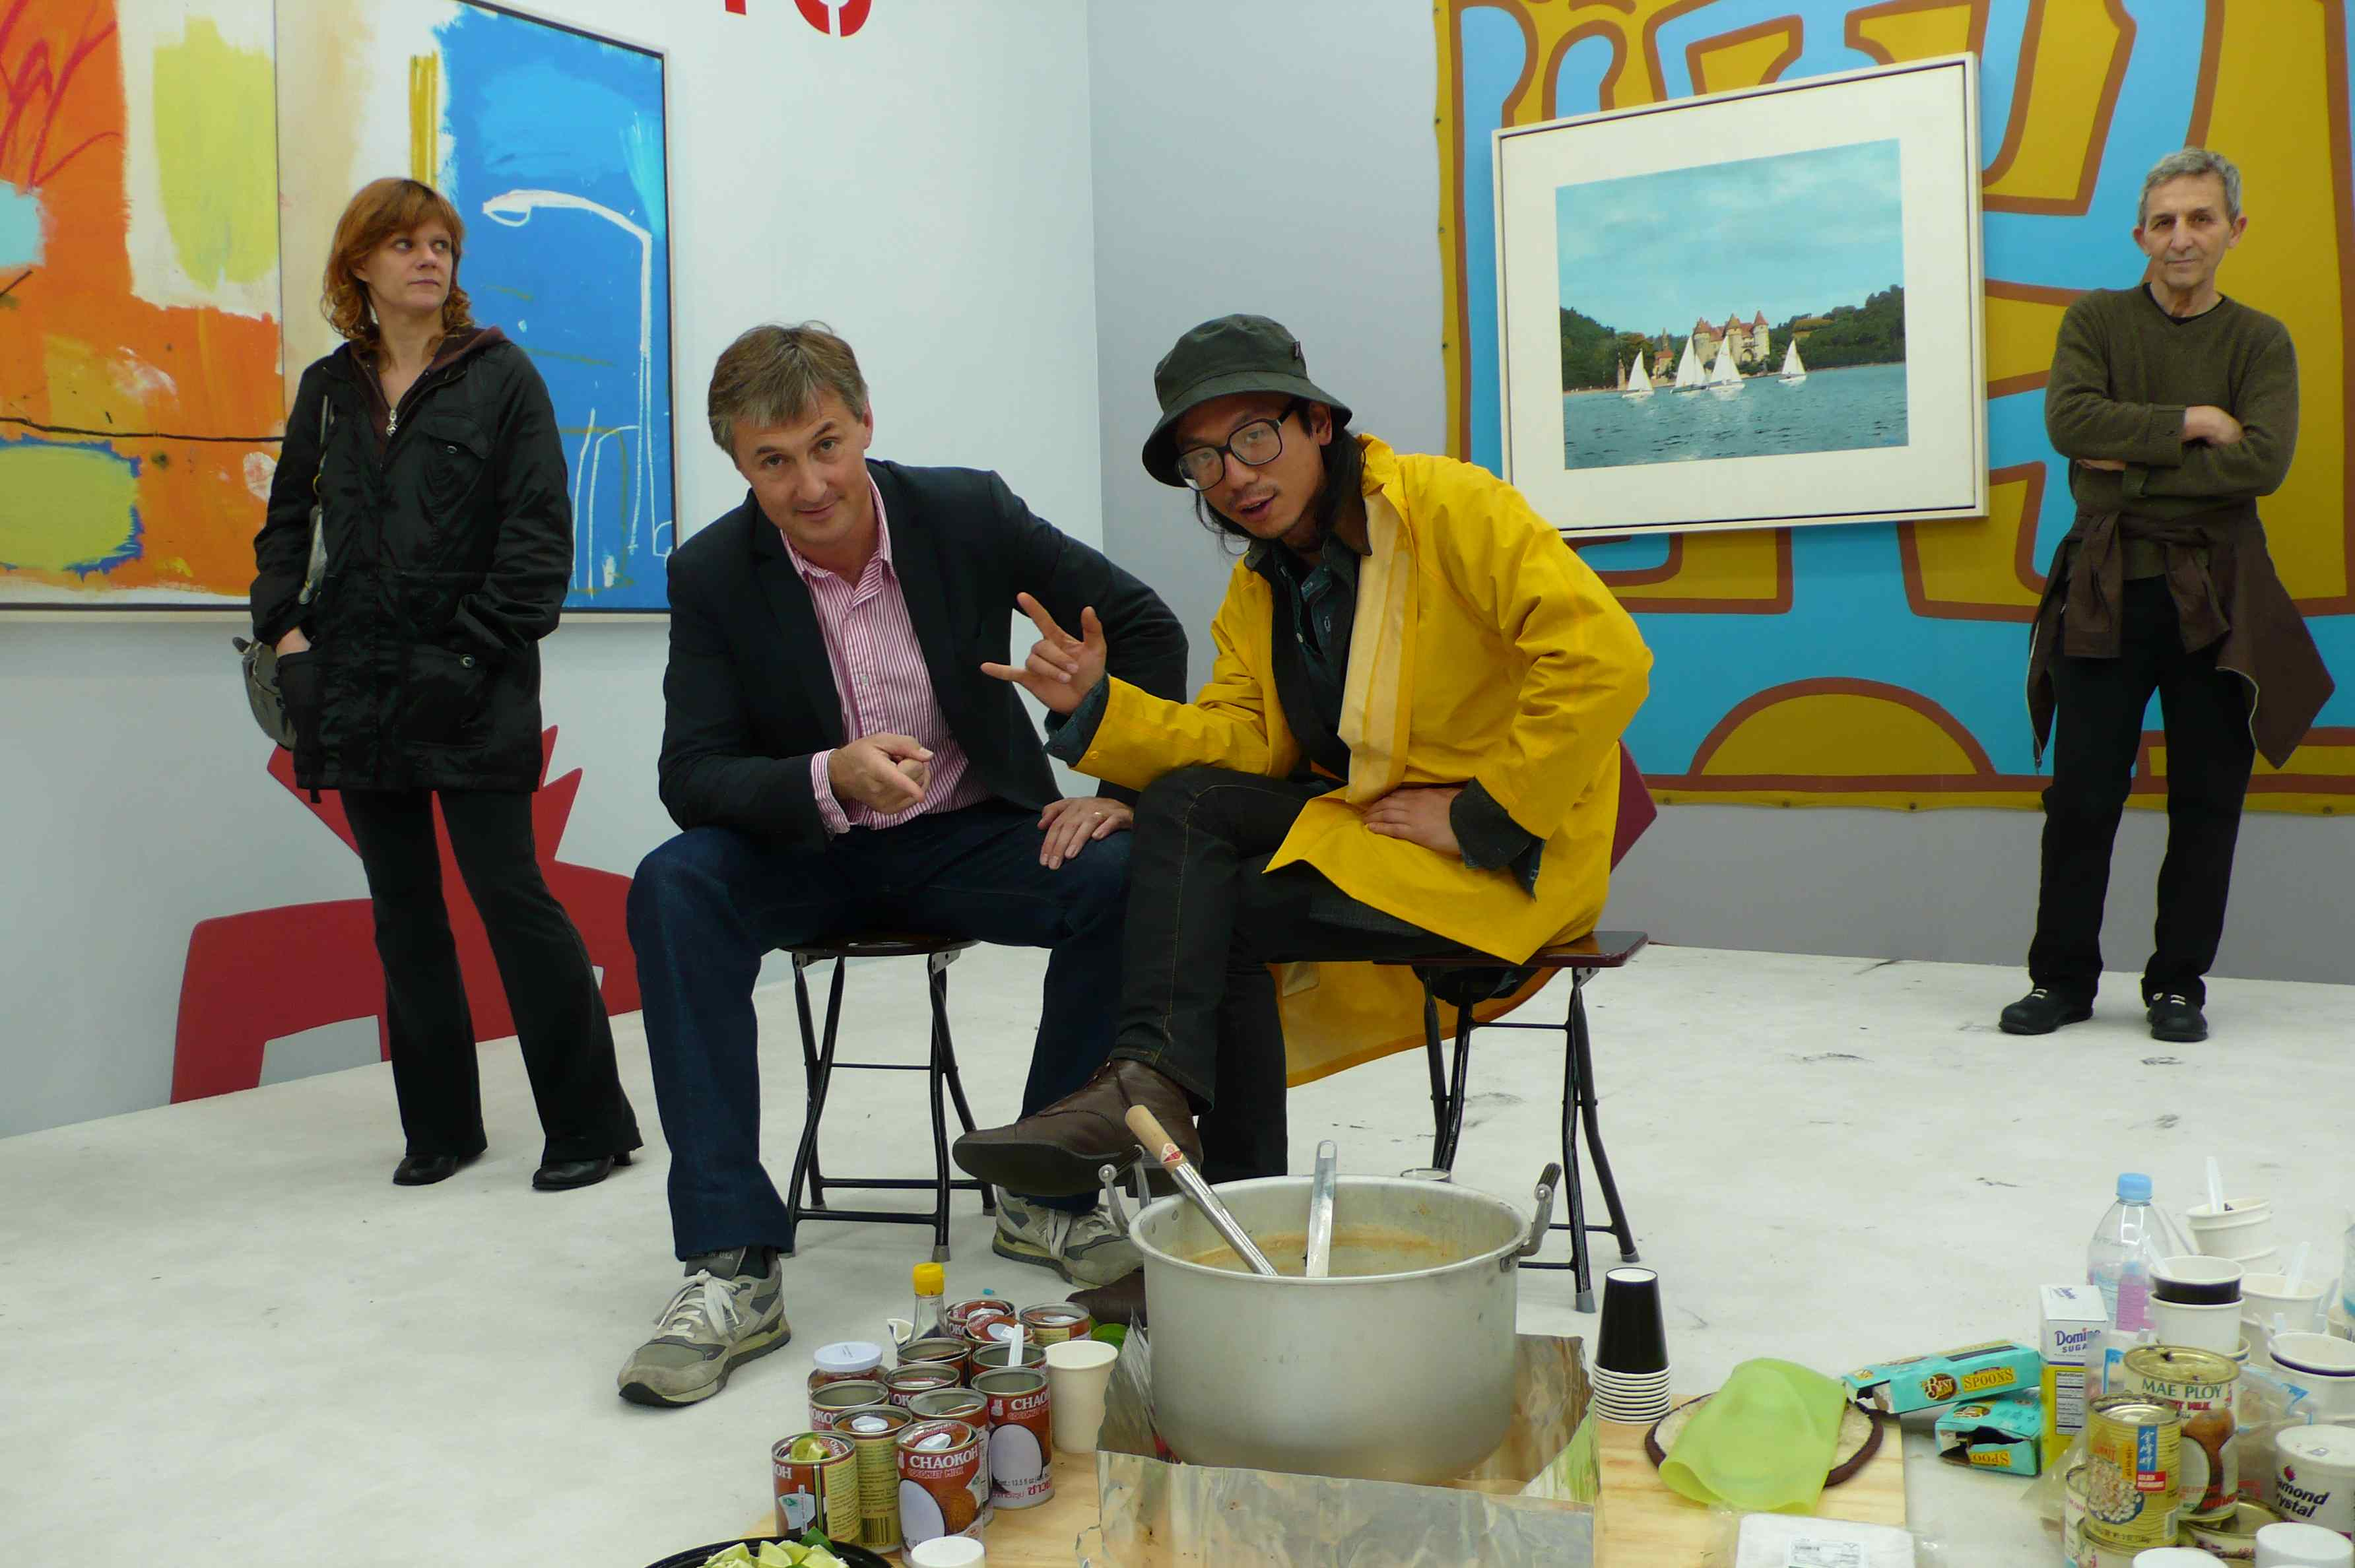 David Zwirner and Tony Huang\'s hospitality via Art Observed